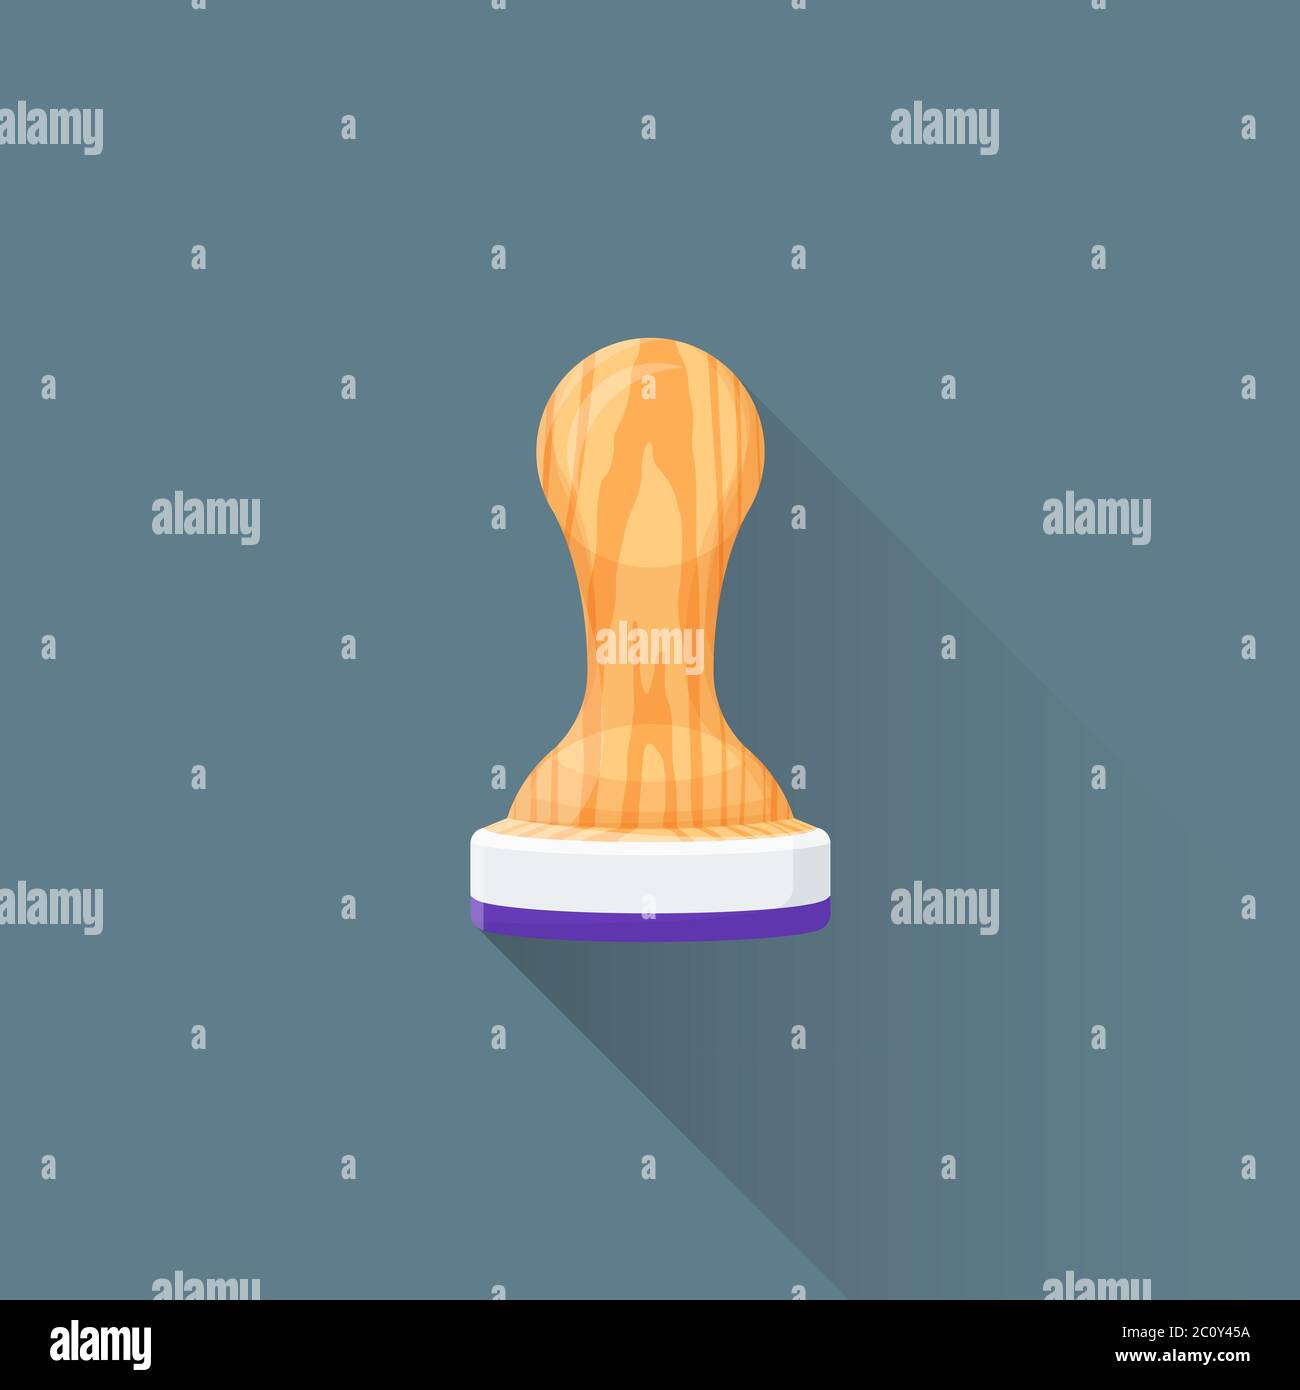 vector flat office stamp tool illustration icon Stock Photo